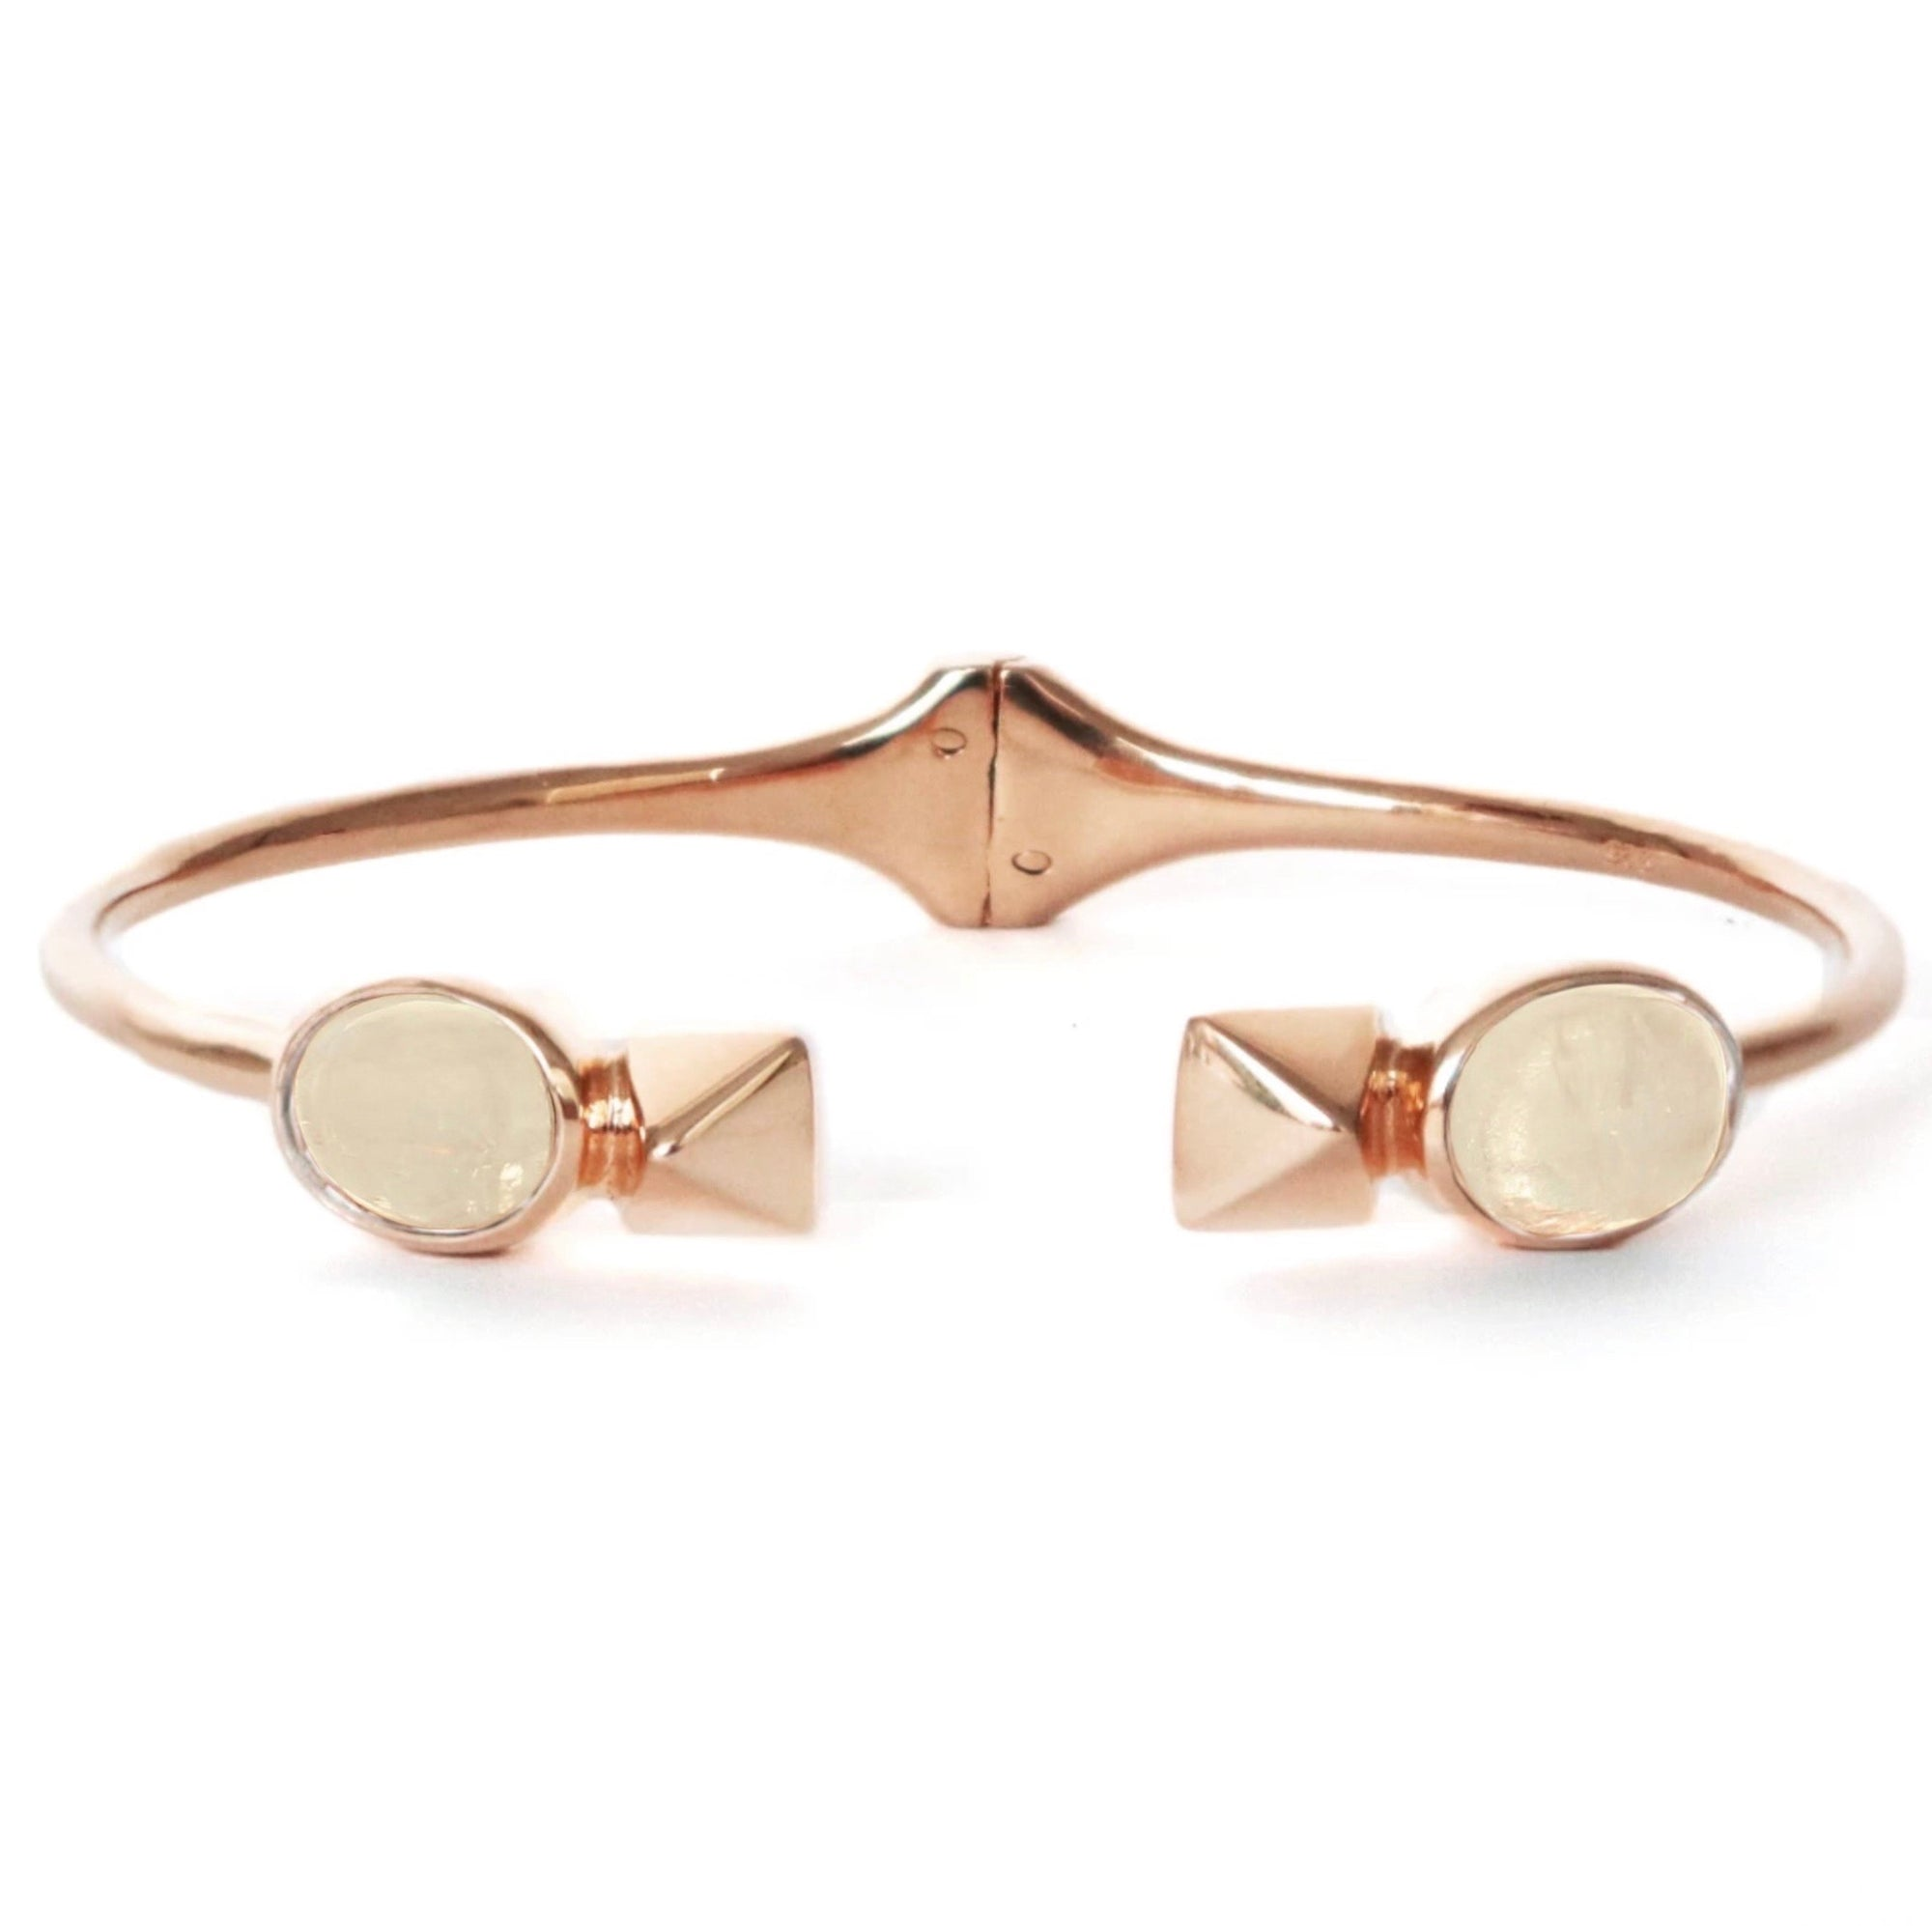 GLEE CUFF - RAINBOW MOONSTONE & ROSE GOLD - LIMITED EDITION